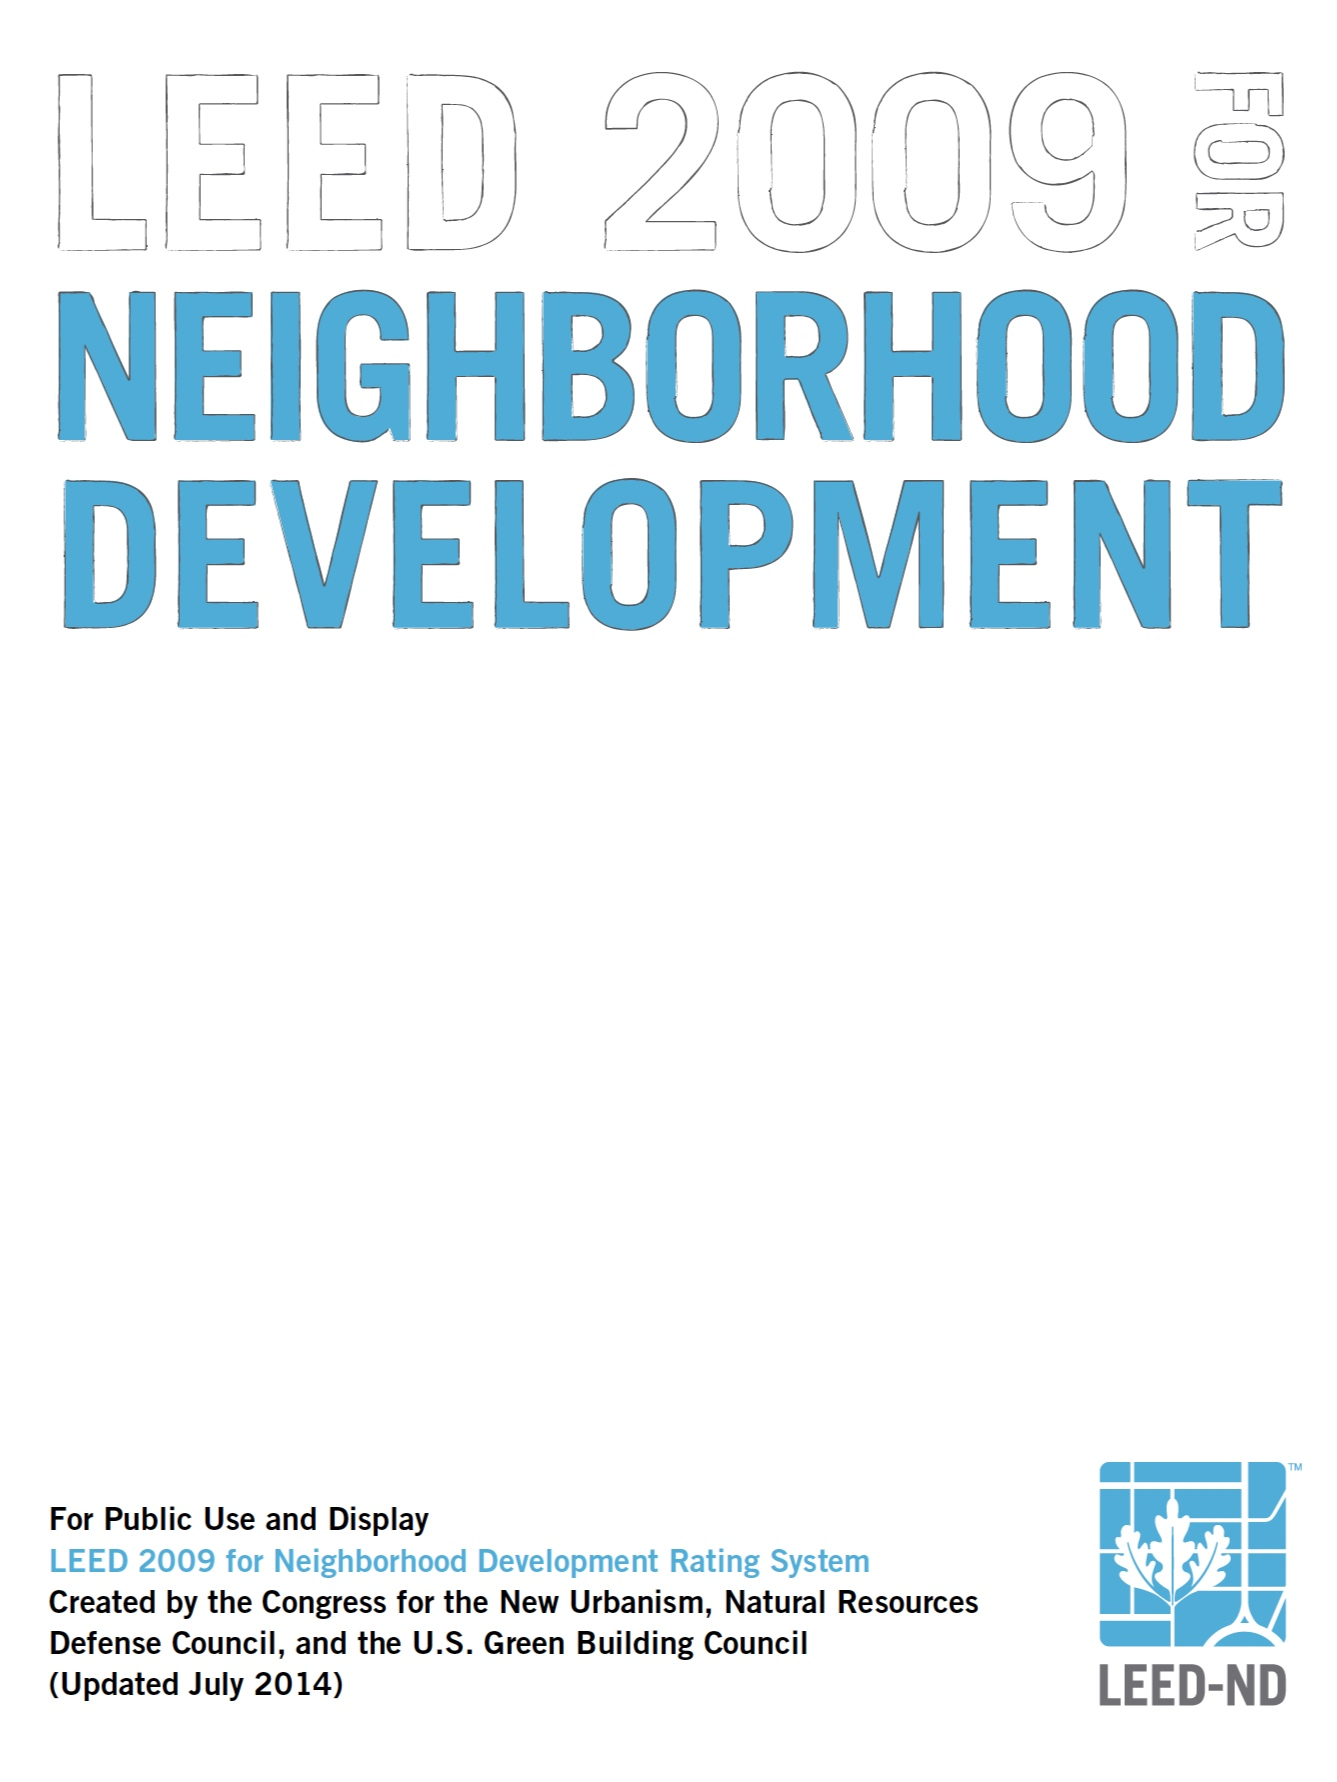 LEED 2009 for Neighborhood Development Rating System - The U.S. Green Building Council (USGBC), the Congress for the New Urbanism (CNU), and the Natural Resources Defense Council (NRDC)—organizations that represent leading design professionals, progressive builders and developers, and the environmental community—have come together to develop a rating system for neighborhood planning and development based on the combined principles of smart growth, New Urbanism, and green infrastructure and building. The goal of this partnership is to establish a national leadership standard for assessing and rewarding environmentally superior green neighborhood development practices within the framework of the LEED® Green Building Rating System™.